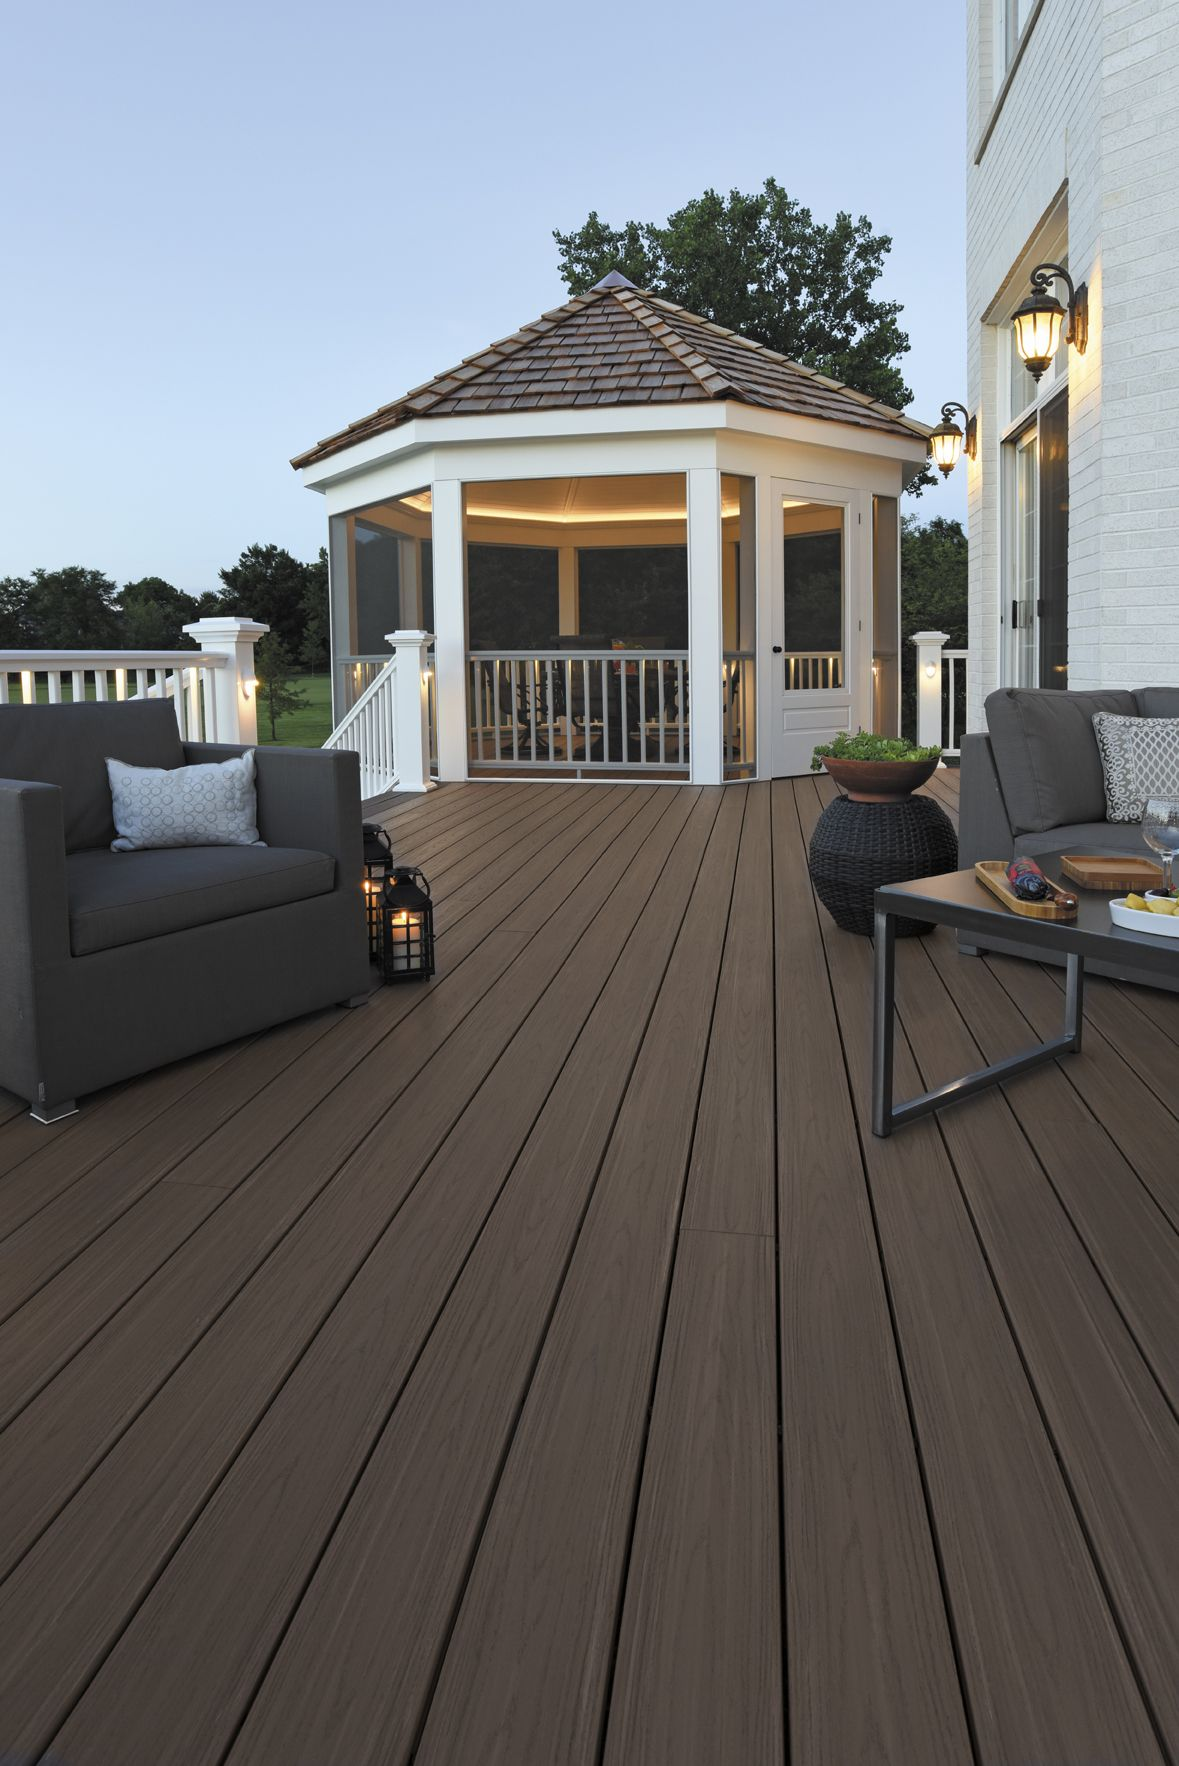 AZEK Harvest Collection Decking in Autumn Chestnut with